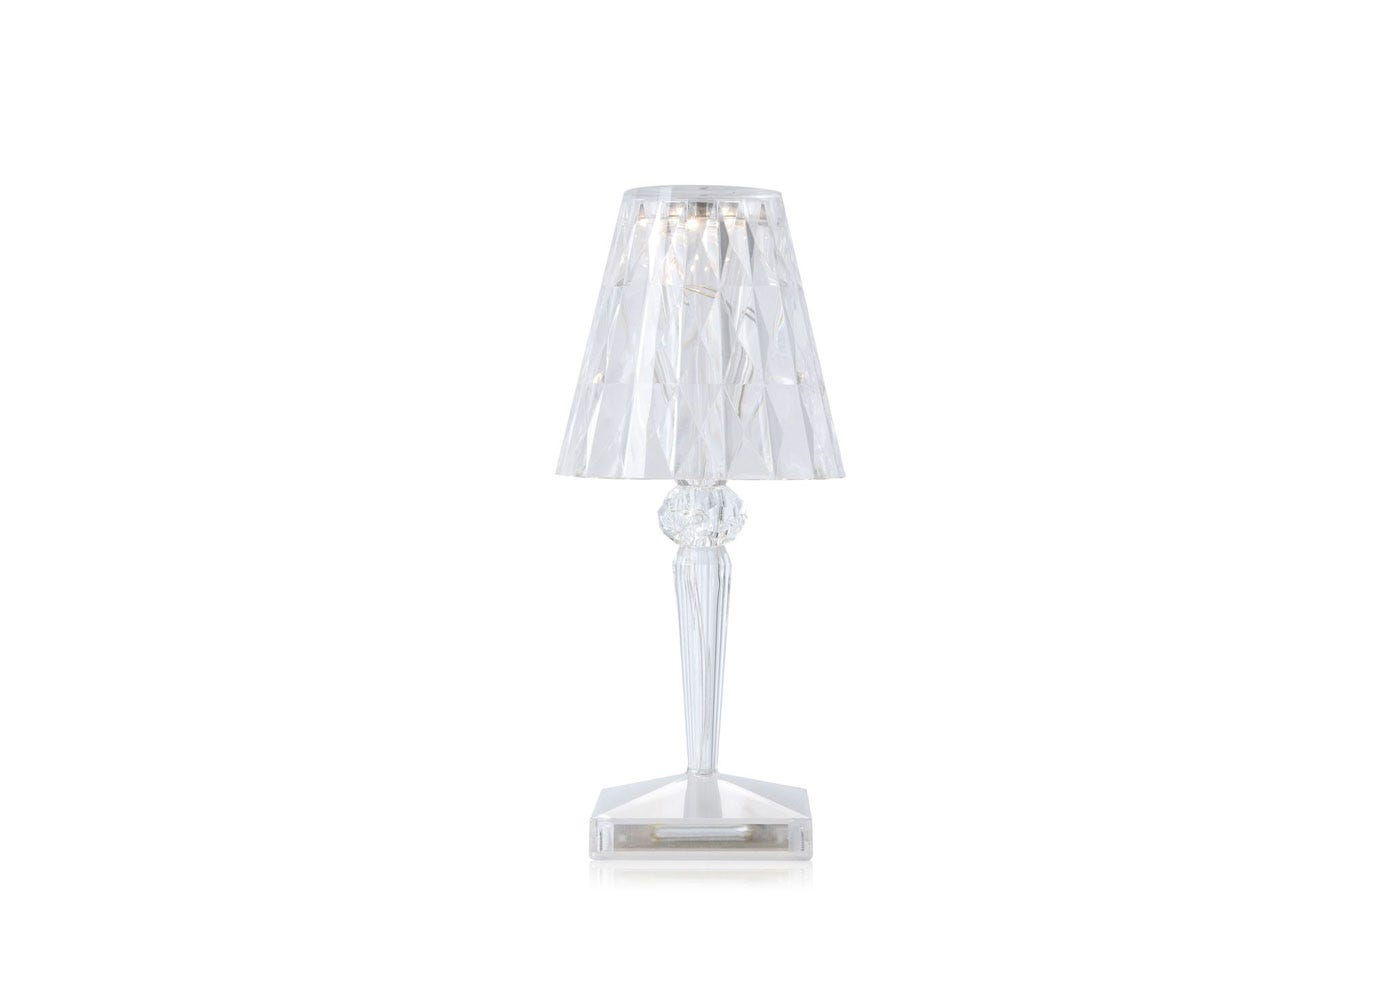 As shown: Battery lamp crystal